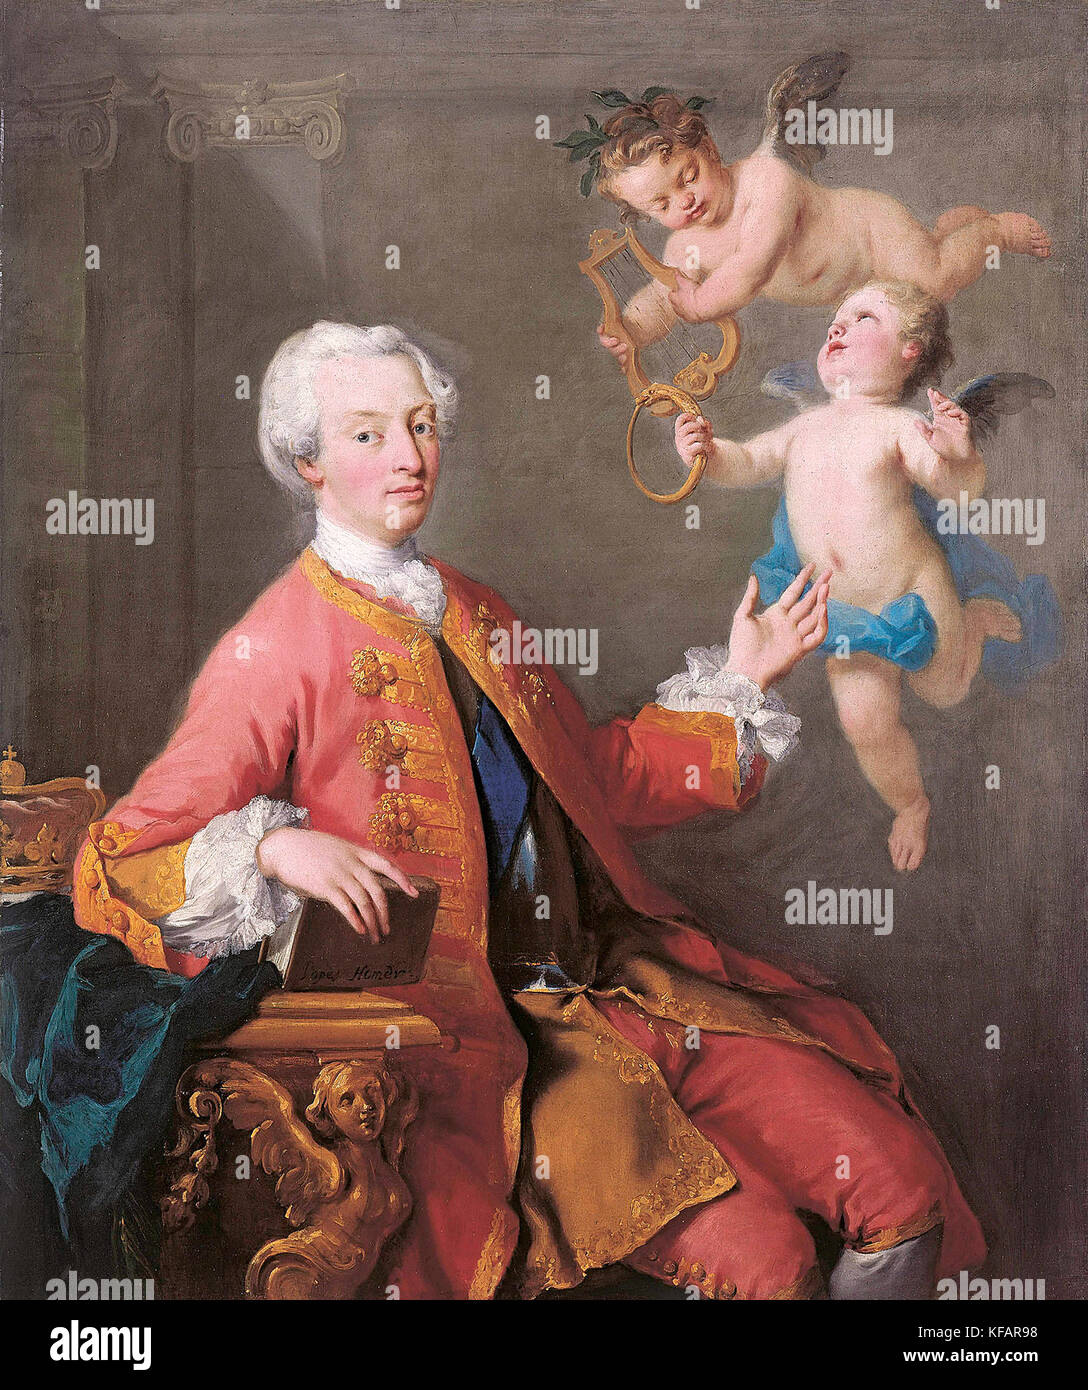 Portrait of Frederick, Prince of Wales, heir apparent to the British throne from 1727 until his death. He was the - Stock Image